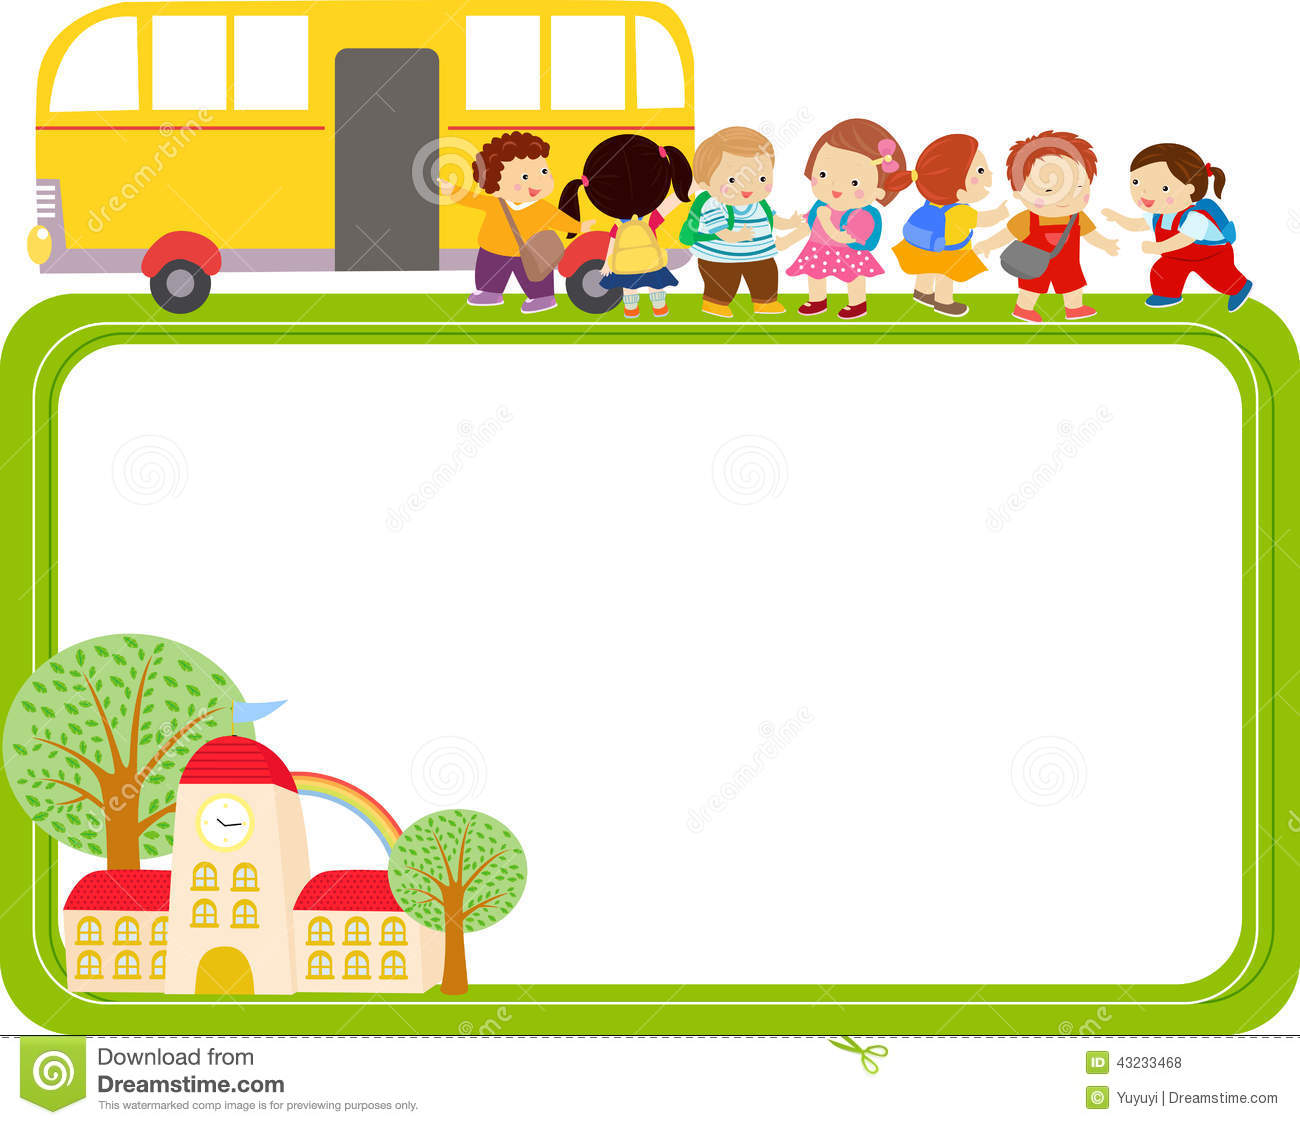 cute cartoon kids and school bus frame stock vector - illustration